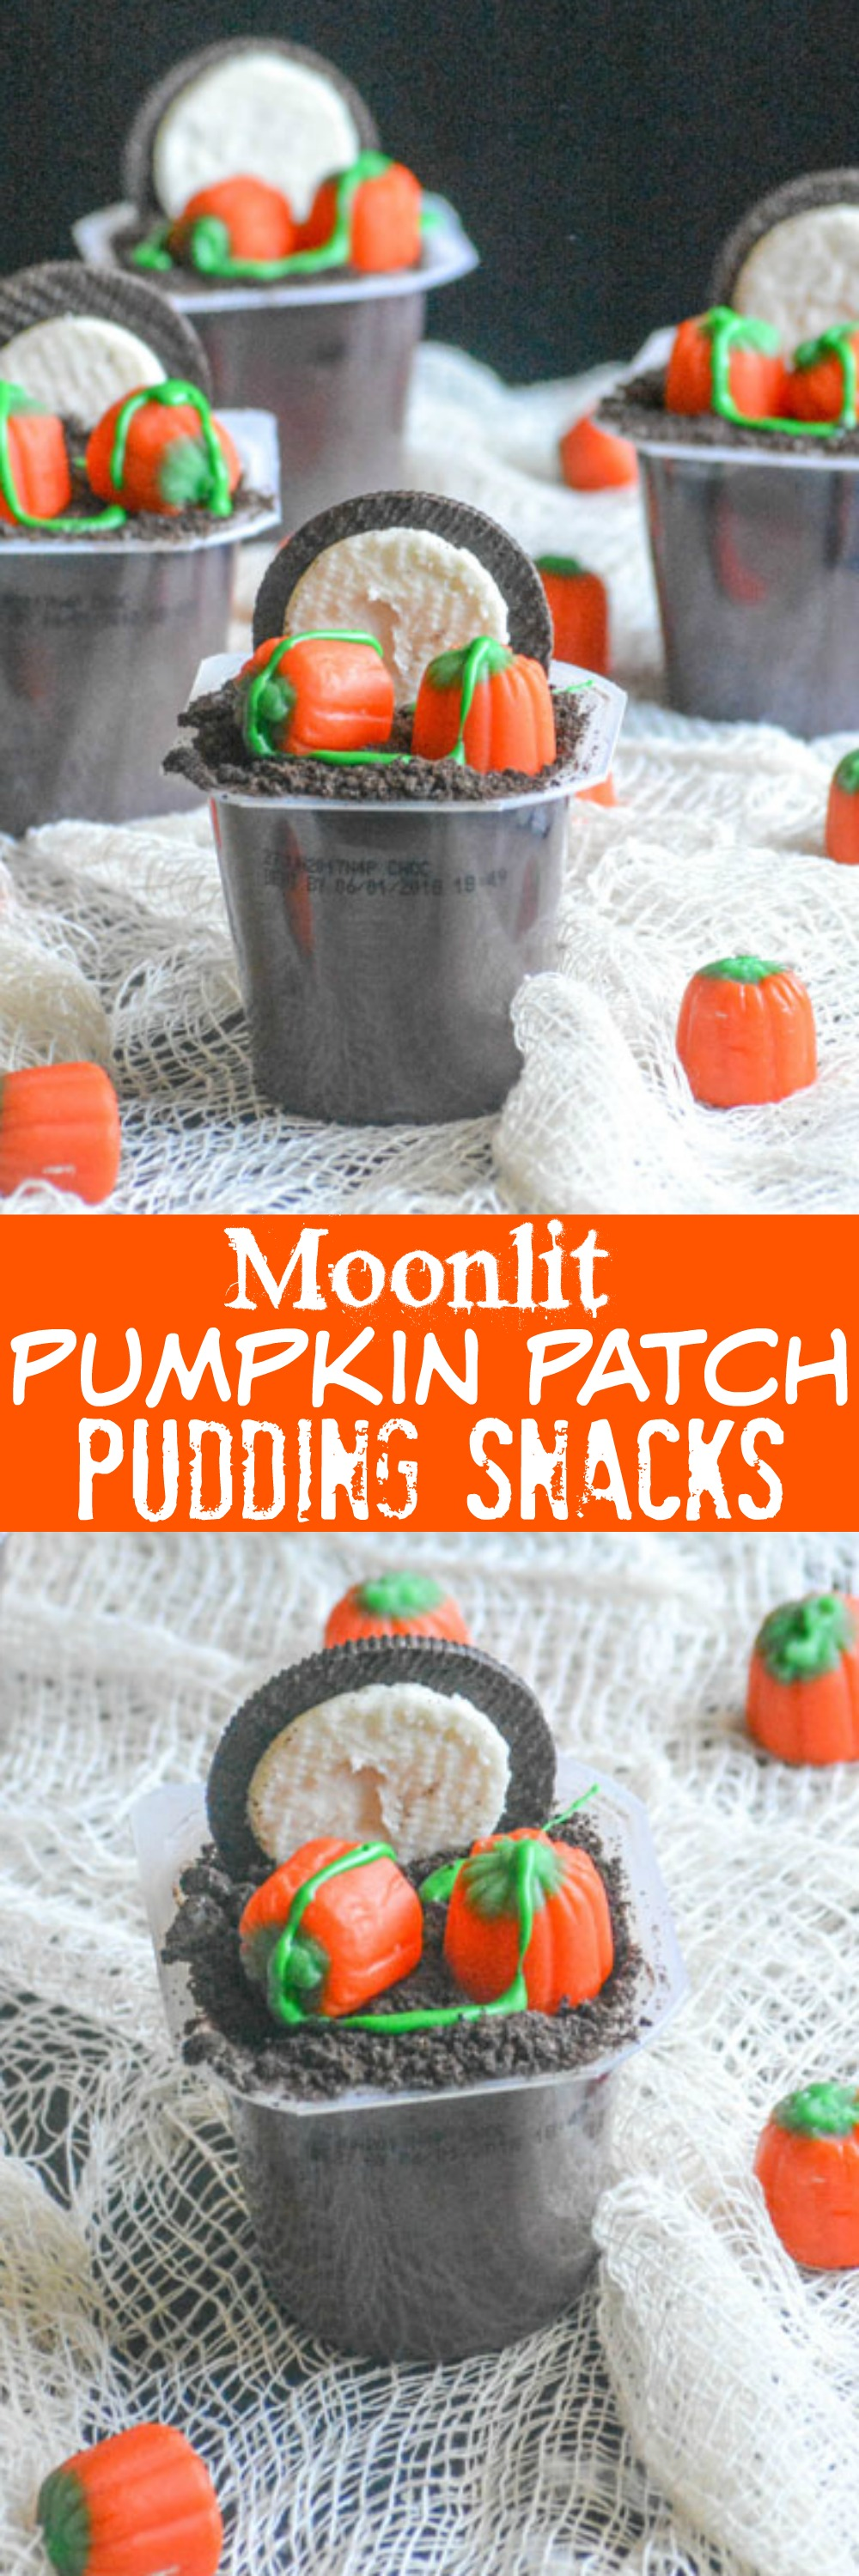 Looking for an easy way to infuse some fun into your kids' afternoon snack? These Moonlit Pumpkin Patch Pudding Snacks are fun, festive, and a great way to get everyone excited for Halloween. Just like your annual visit to the pumpkin patch, these yummy pudding cups are meant to be shared.